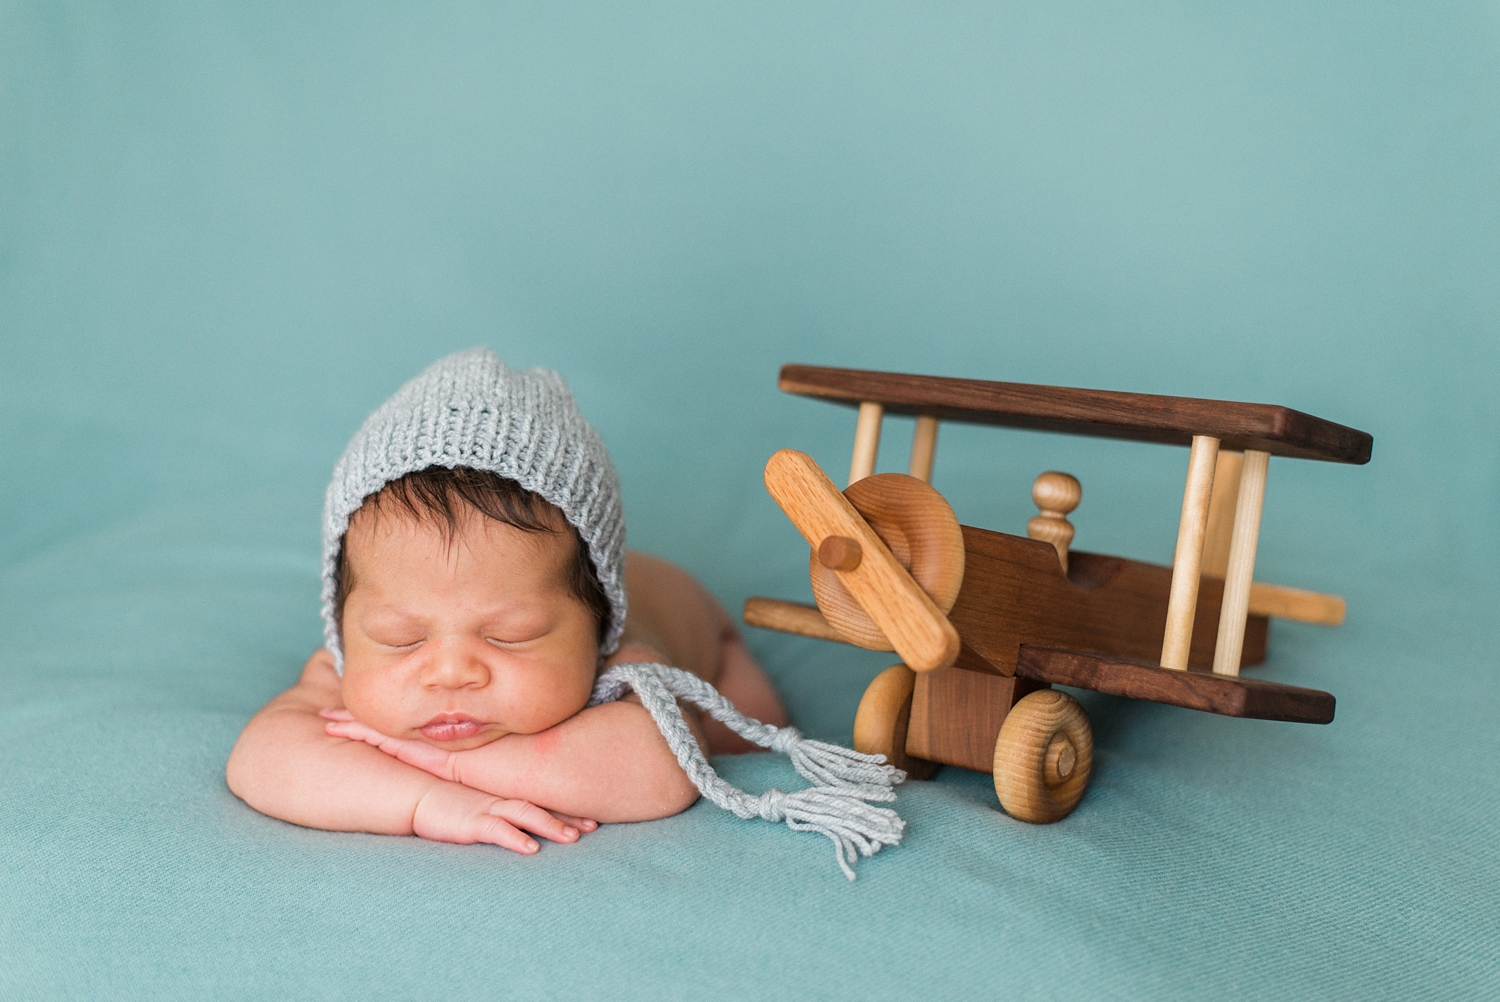 portland-newborn-family-photography-baby-boy-pilot-hat-plane-blue-shelley-marie-photo-388_cr.jpg